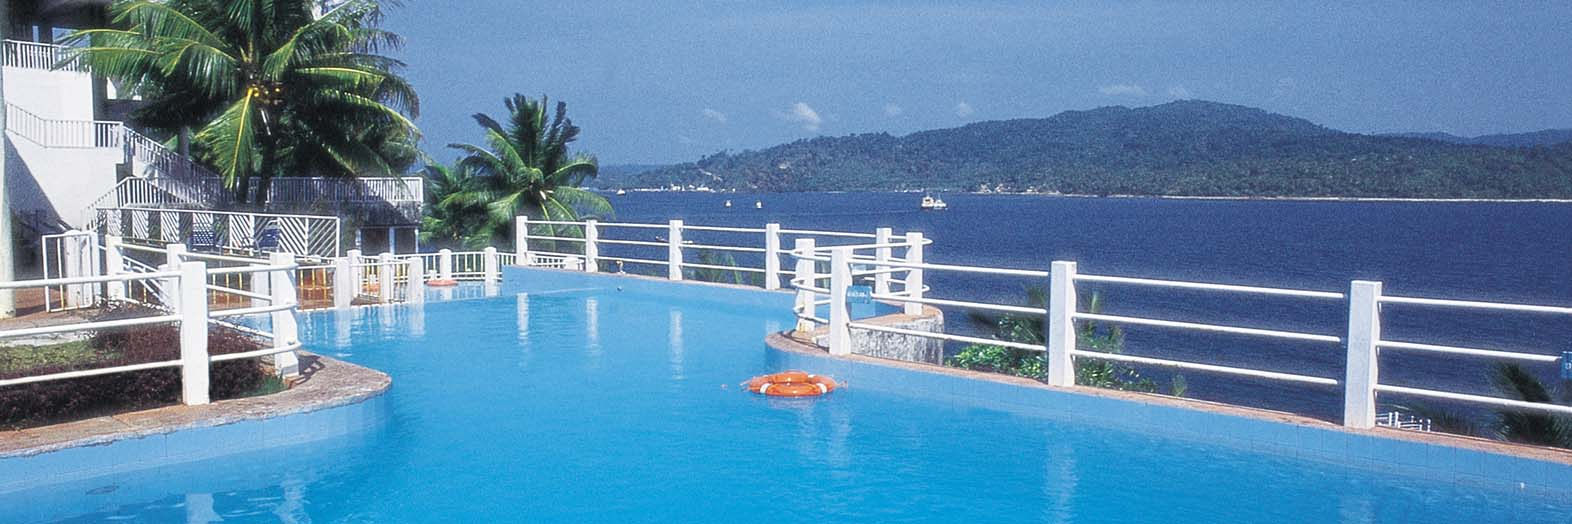 Fortune Resort Bay Island, Port Blair - Diary